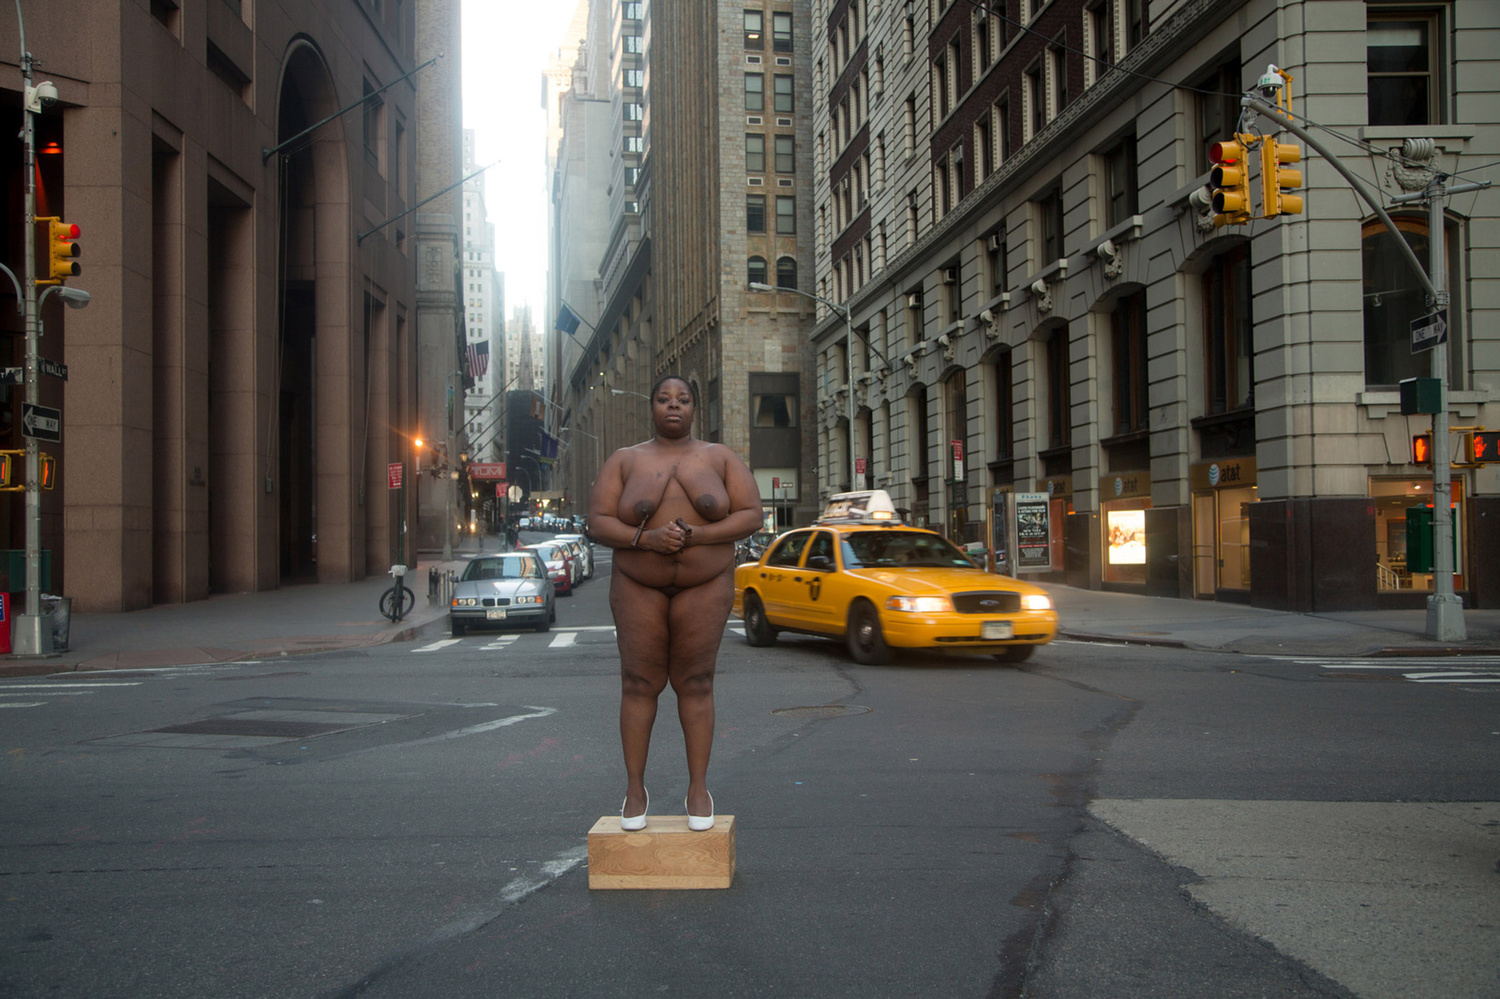 """From Her Body Sprang Their Greatest Wealth"" 2013 — Site of Colonial Slave Market, Wall Street"